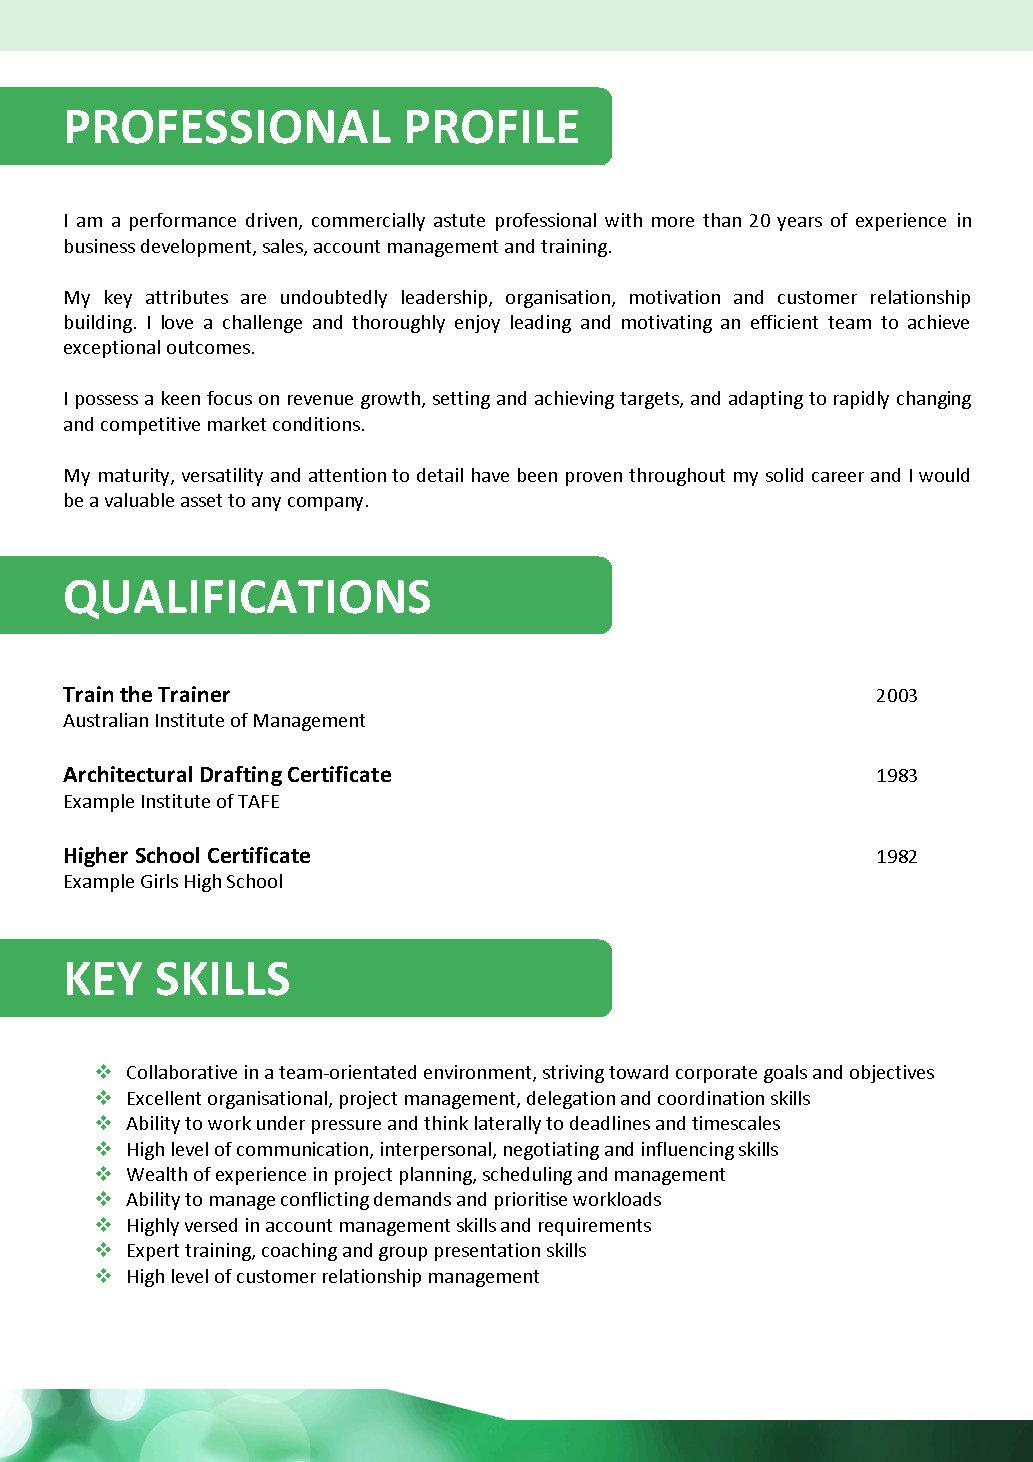 Resume And Selection Criteria Writers We Can Help With Professional Resume Writing Resume